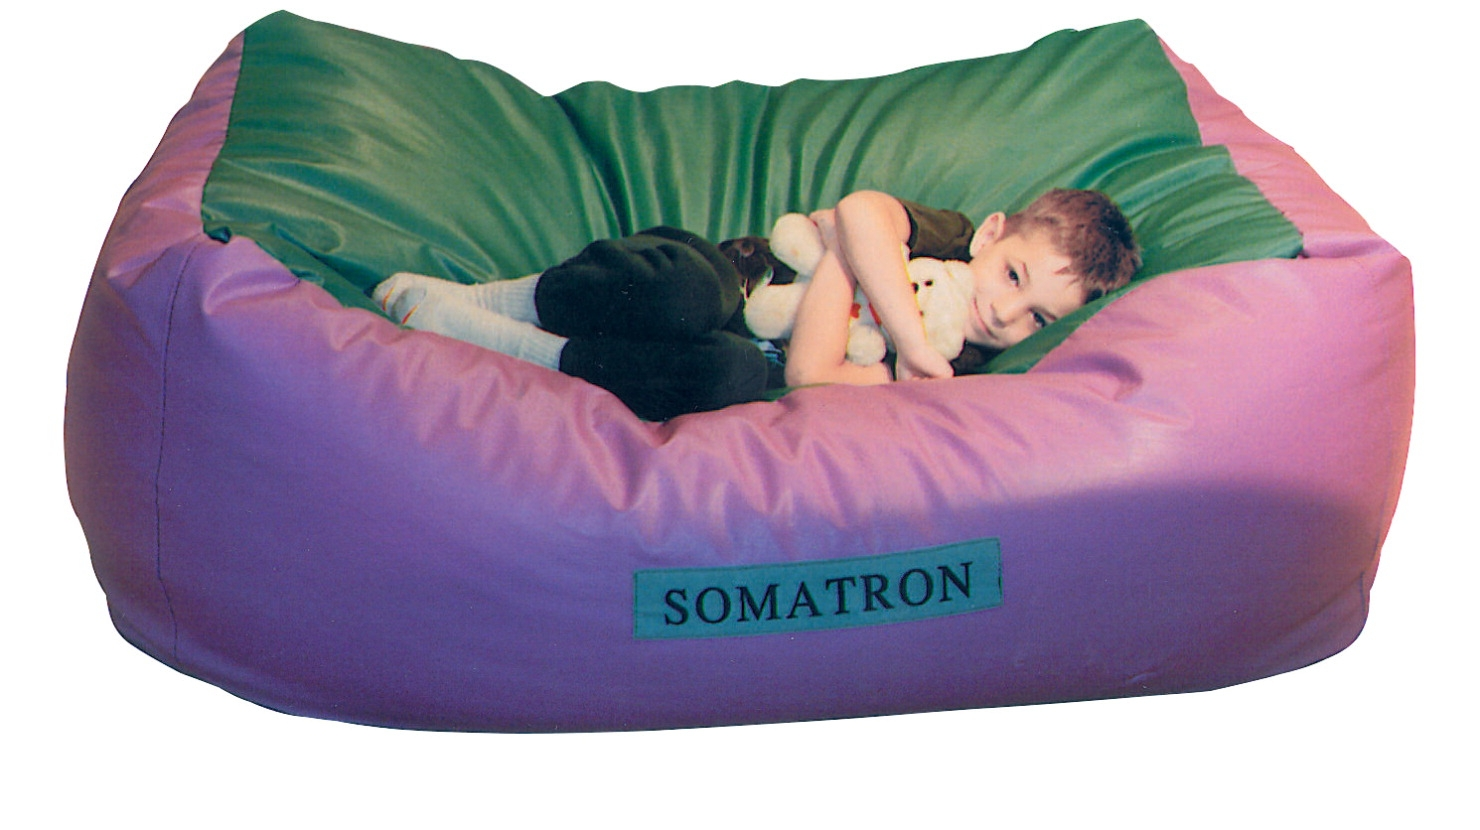 Somatron Body Pillow With Vibrations; 60 X 36 X 24 In; Leather Like Vinyl; Purple/green - 012765 - Basketball Bean Bags Sets 012765